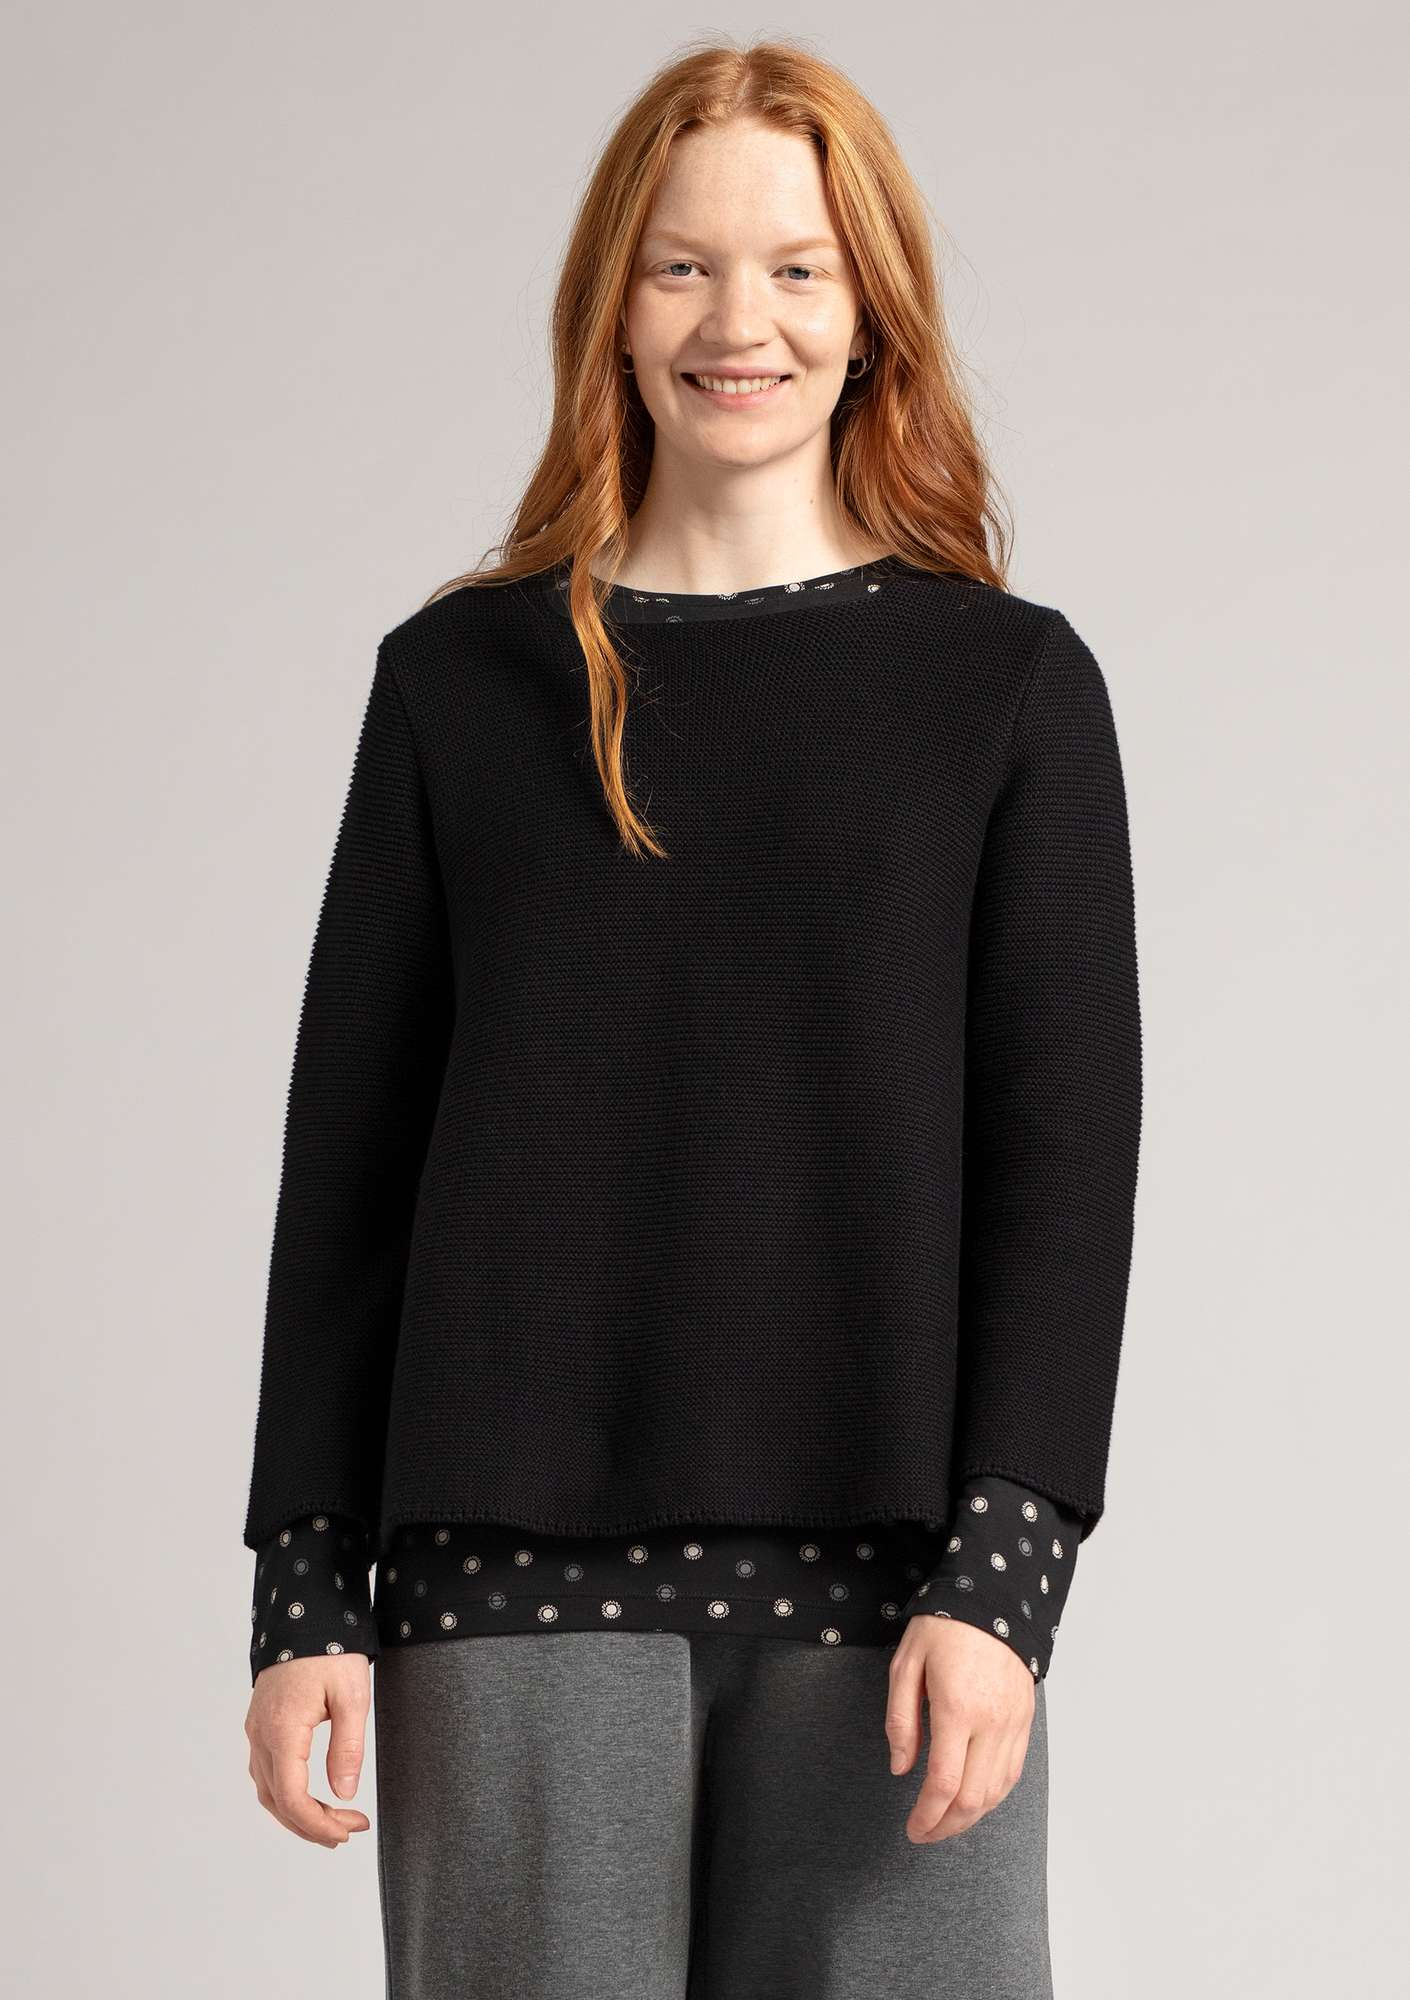 Pull au point mousse en écocoton noir